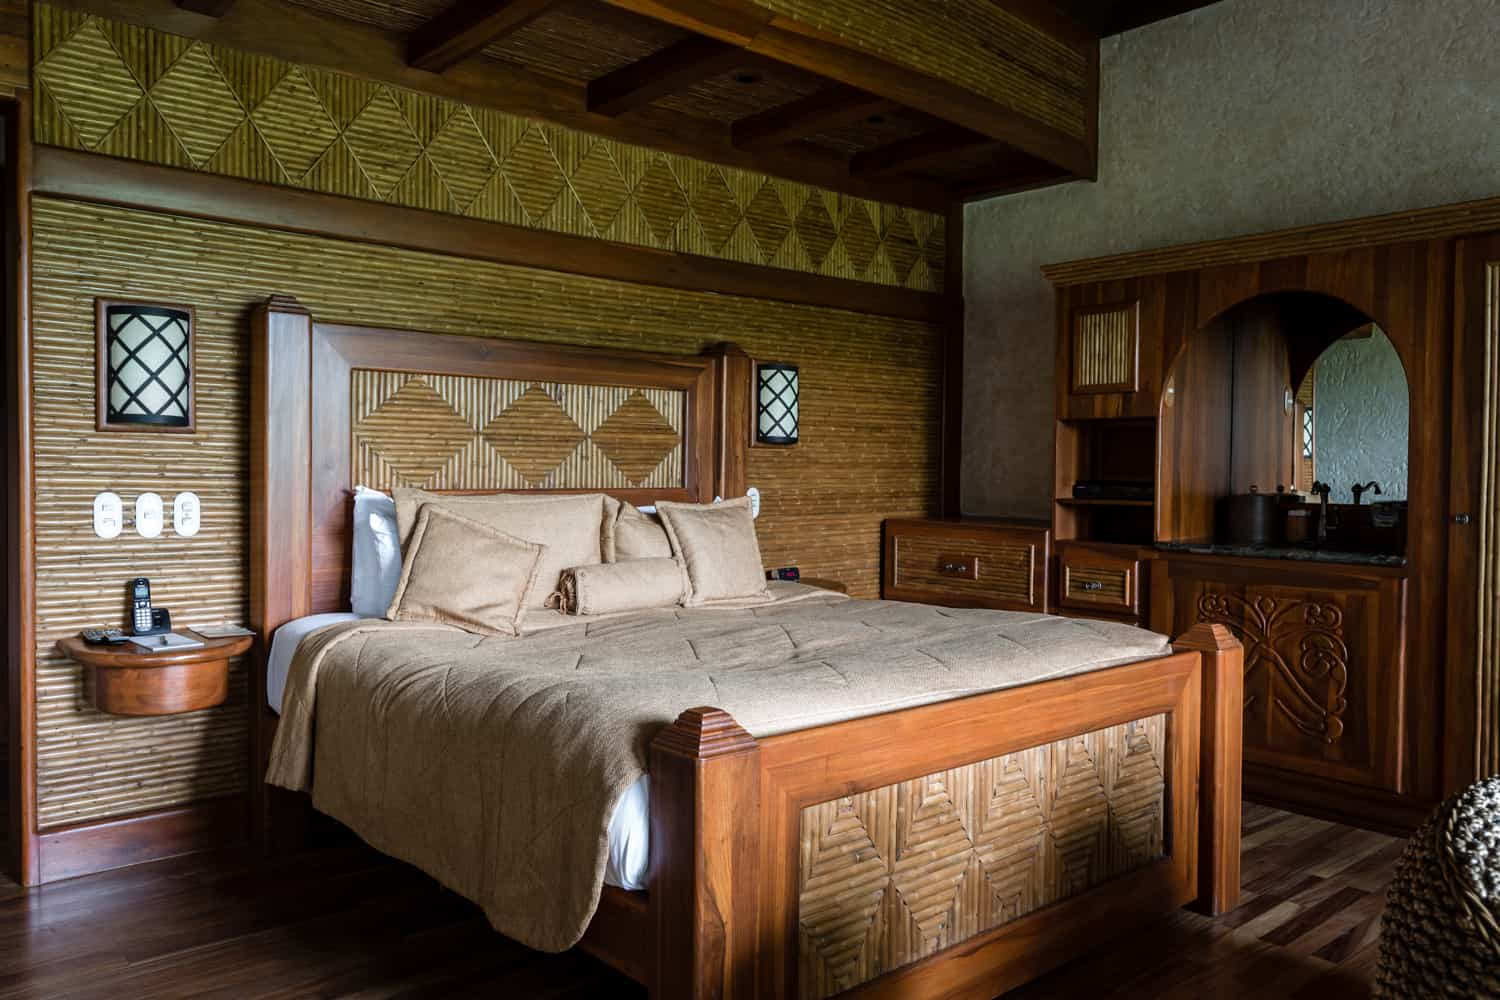 Guest room with wood king bed in middle of room.